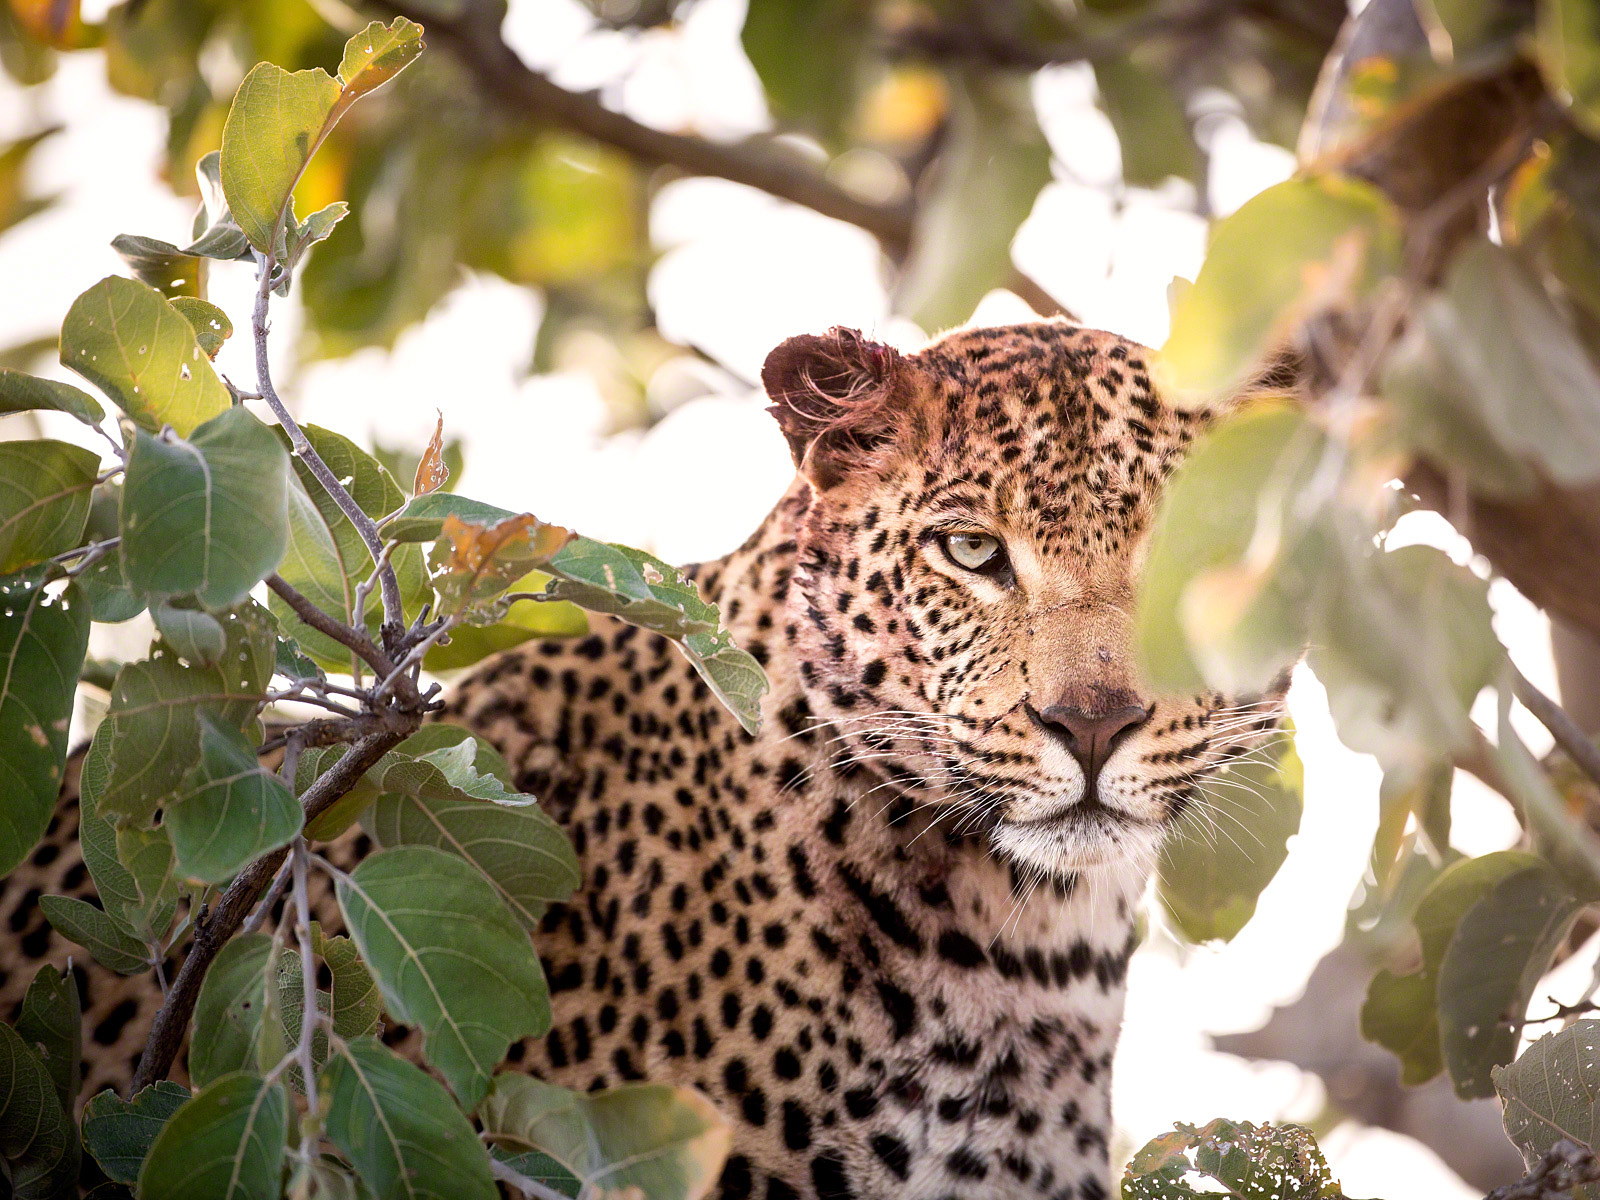 Femaile Leopard: Canon 5D mk3, 500mm F4.0 @f4.0, 1/1000, ISO1000